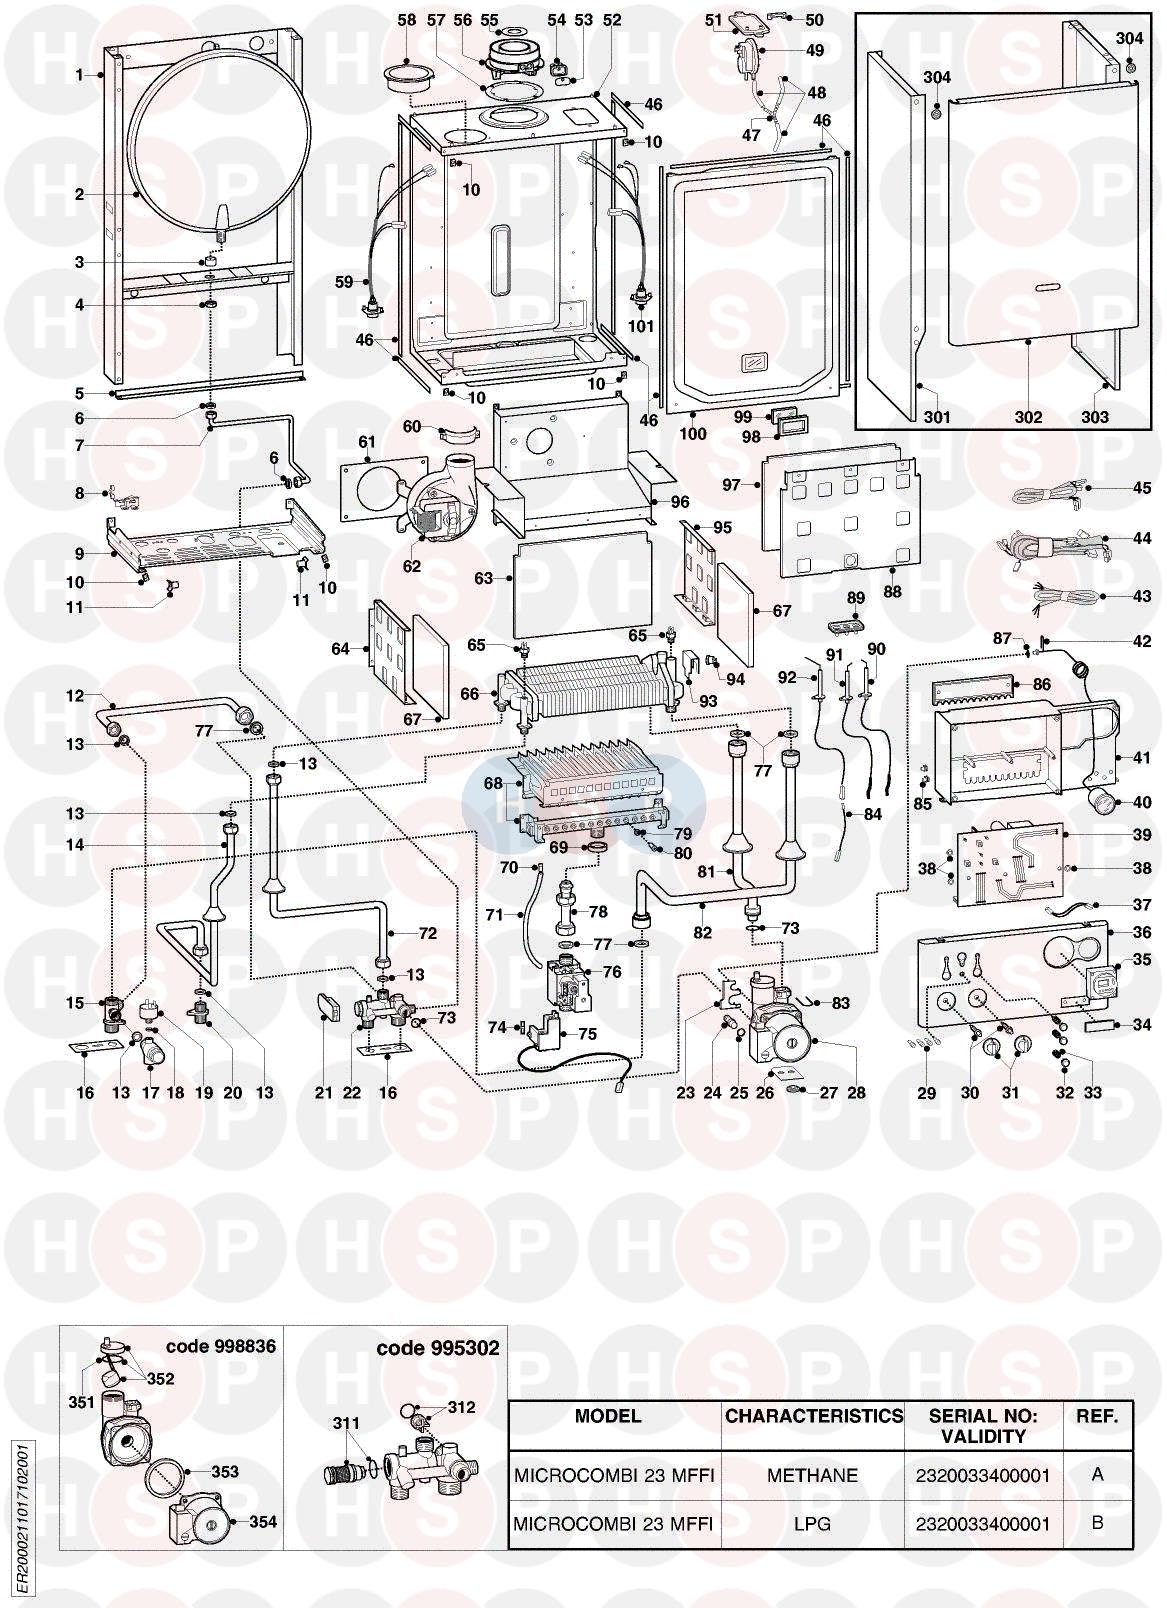 Ariston MICROCOMBI 23 MFFI EDITION2 (EXPLODED VIEW